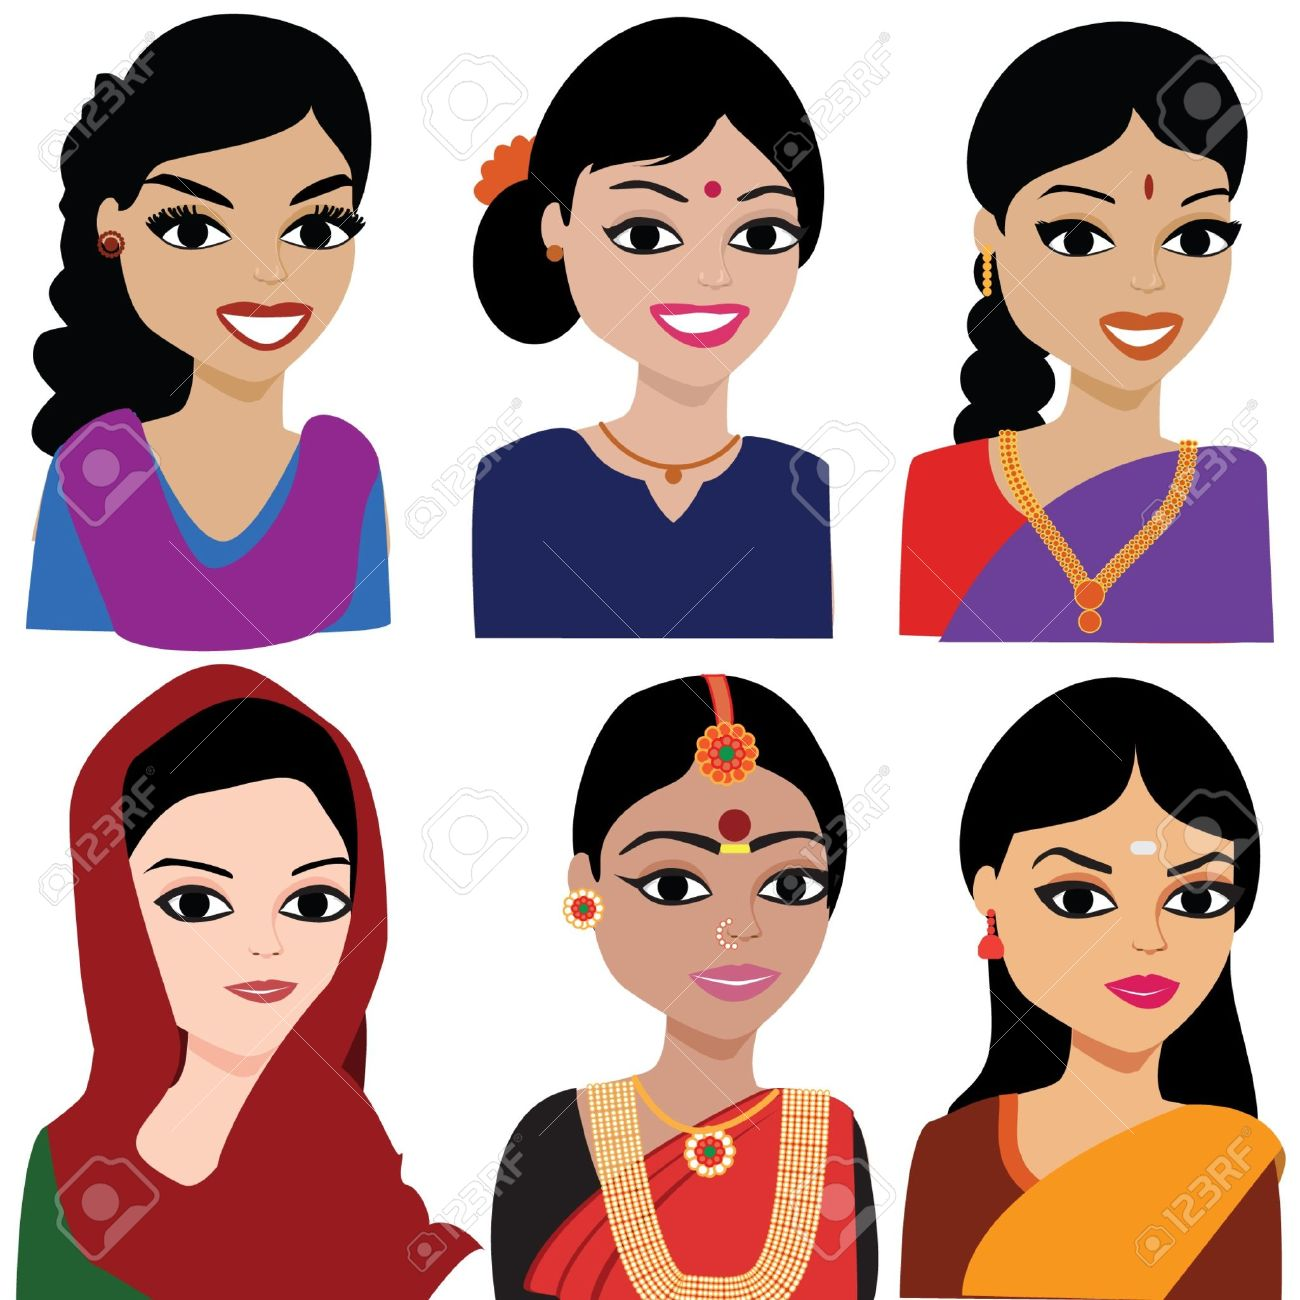 Traditional indian lady clipart image black and white library Indian lady clipart - ClipartFest image black and white library